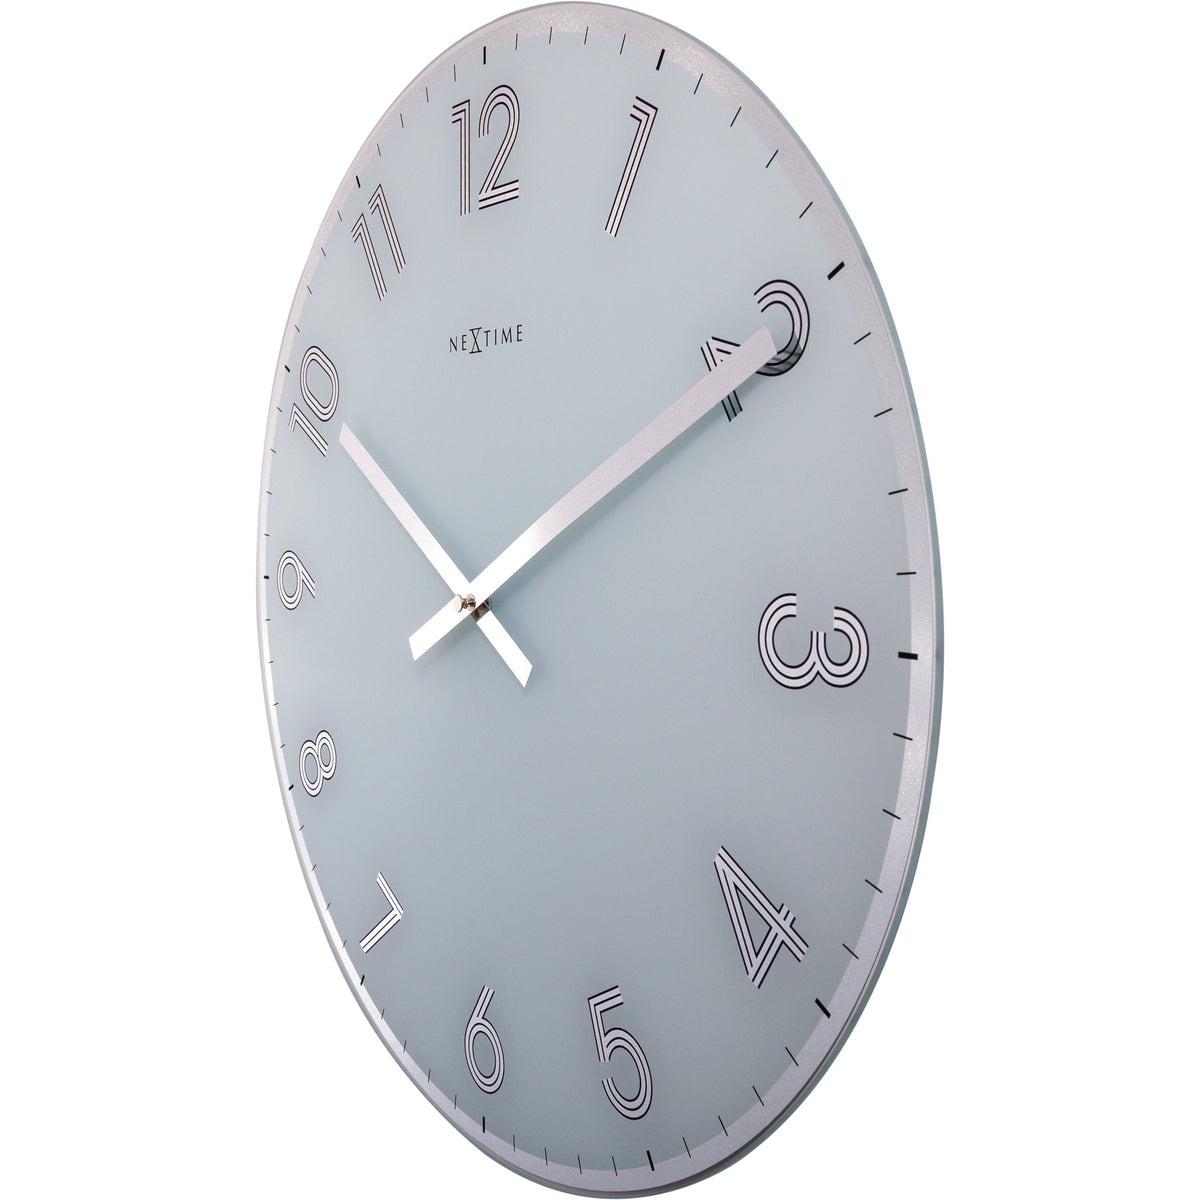 NeXtime - Wall clock - Ø 43 cm - Glass - White - 'Reflect'